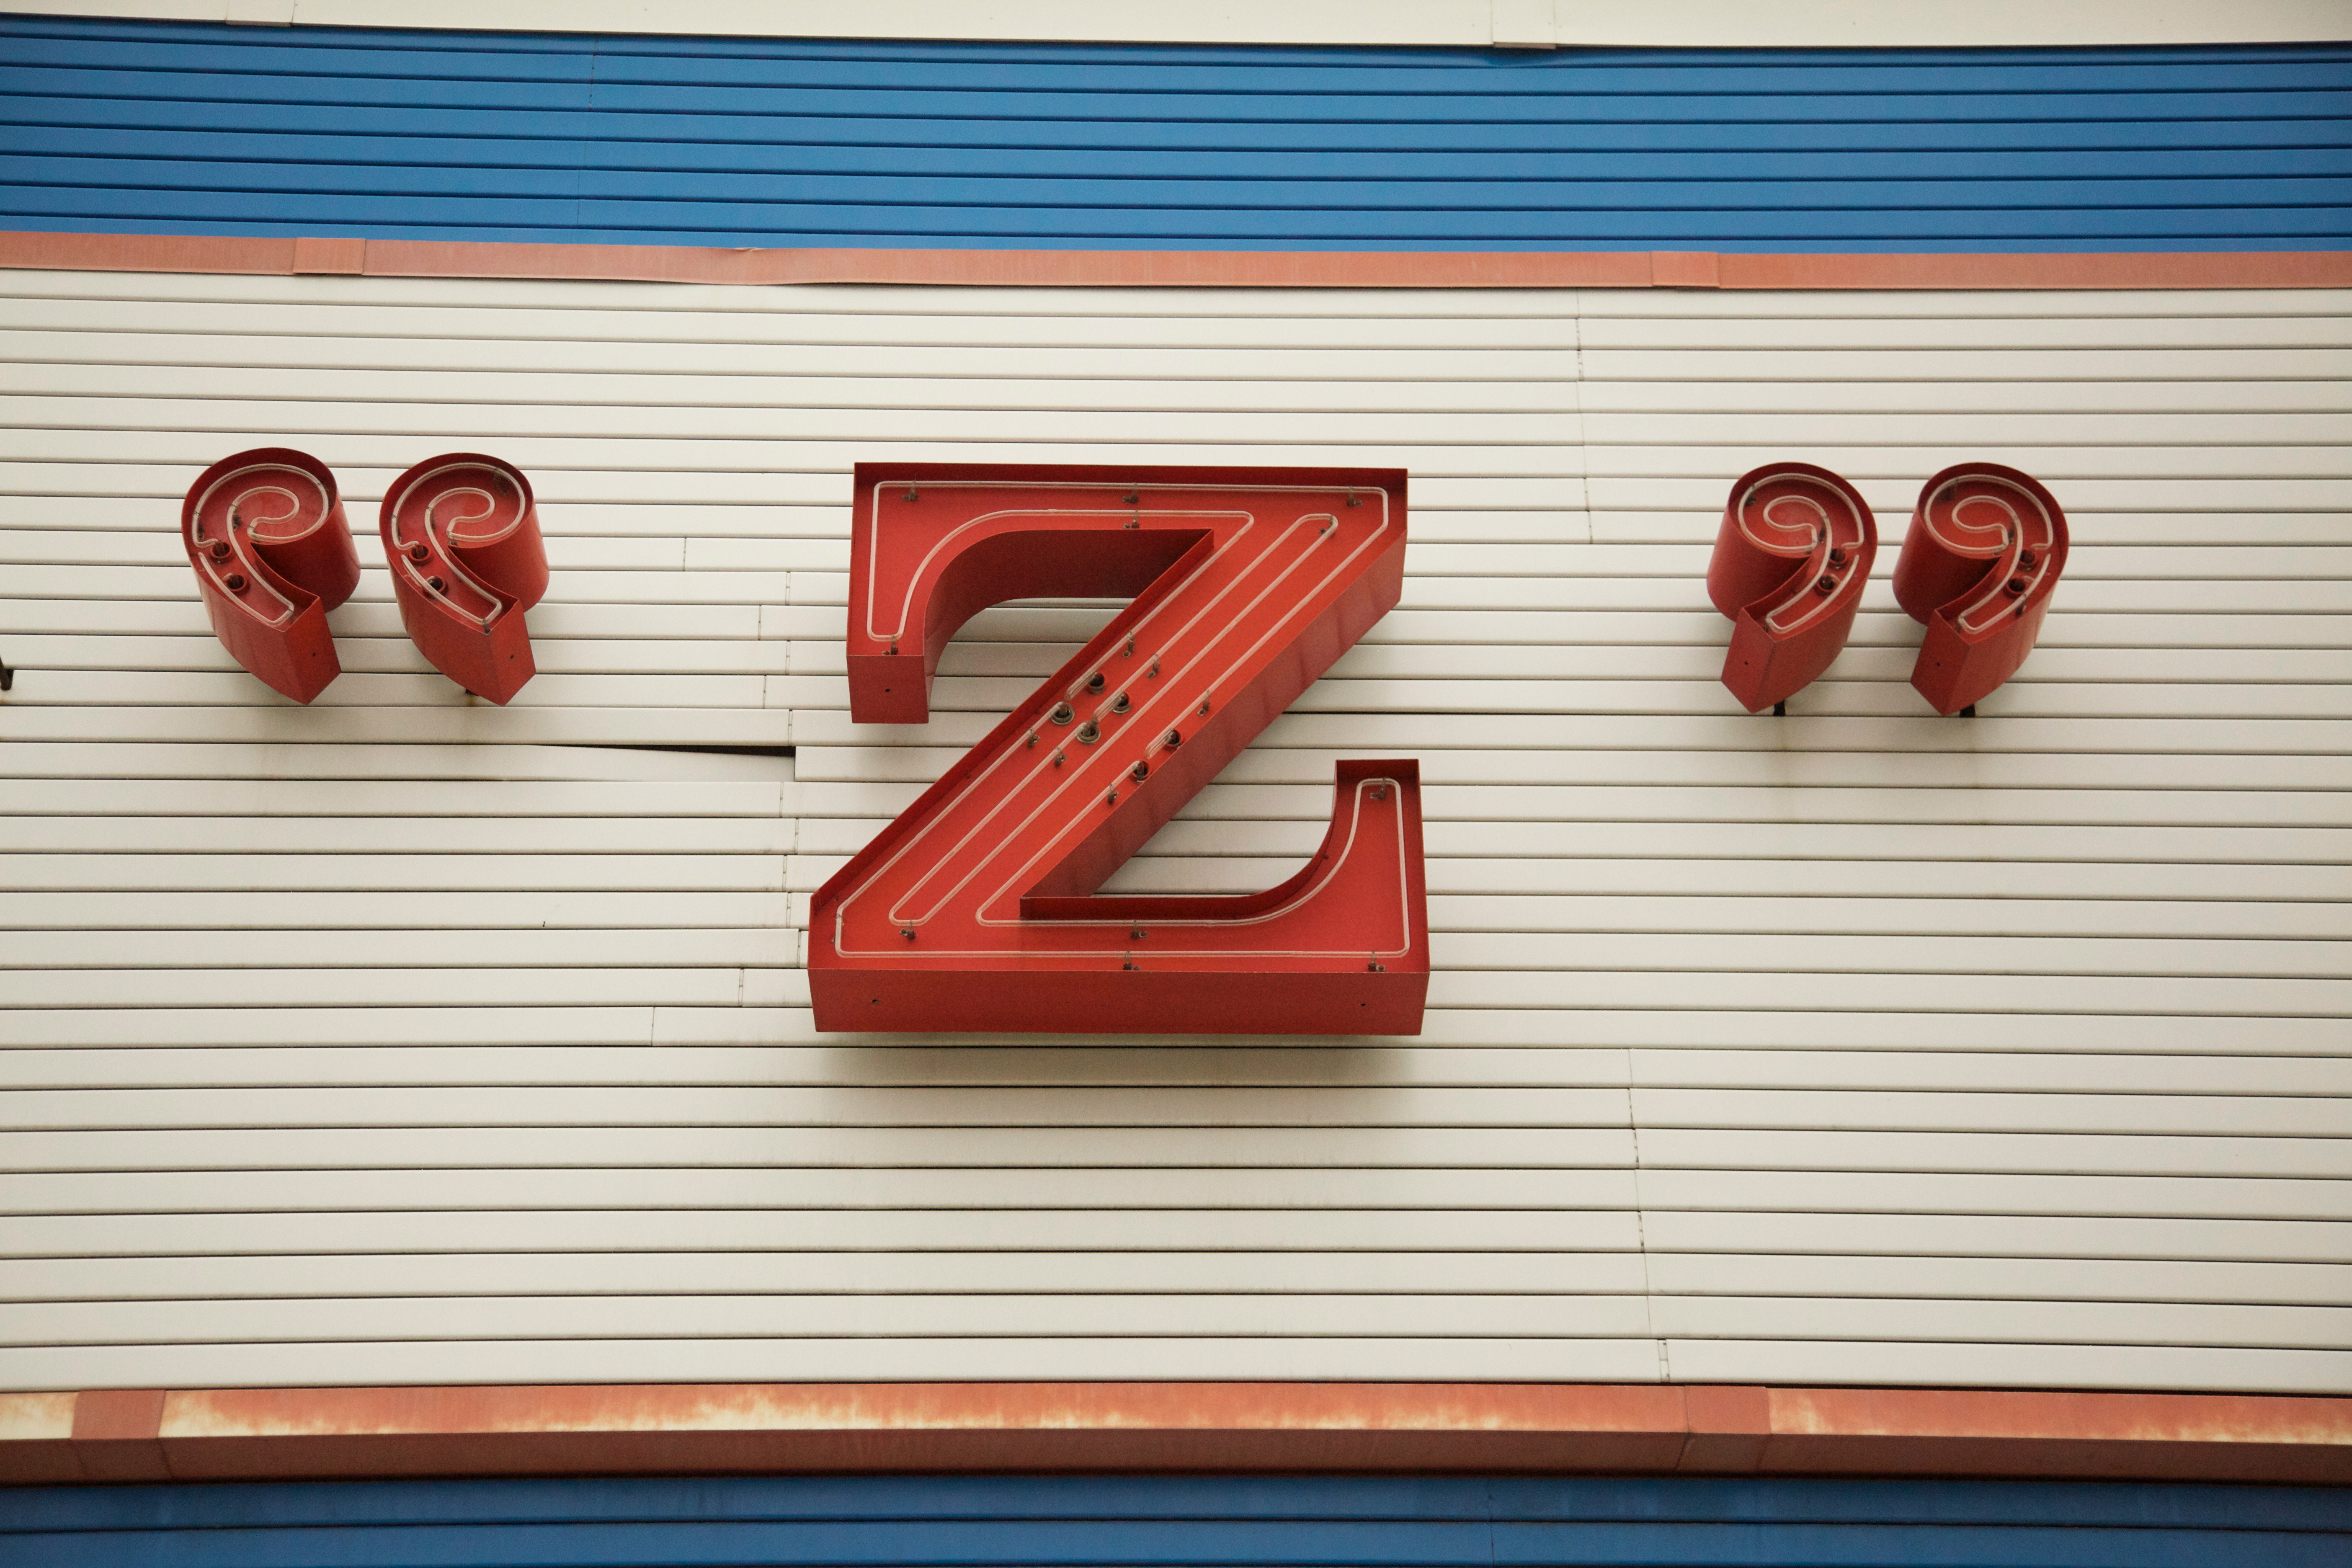 z frank chevrolet dealership sign on 6060 n western avenue in chicago photo by segura